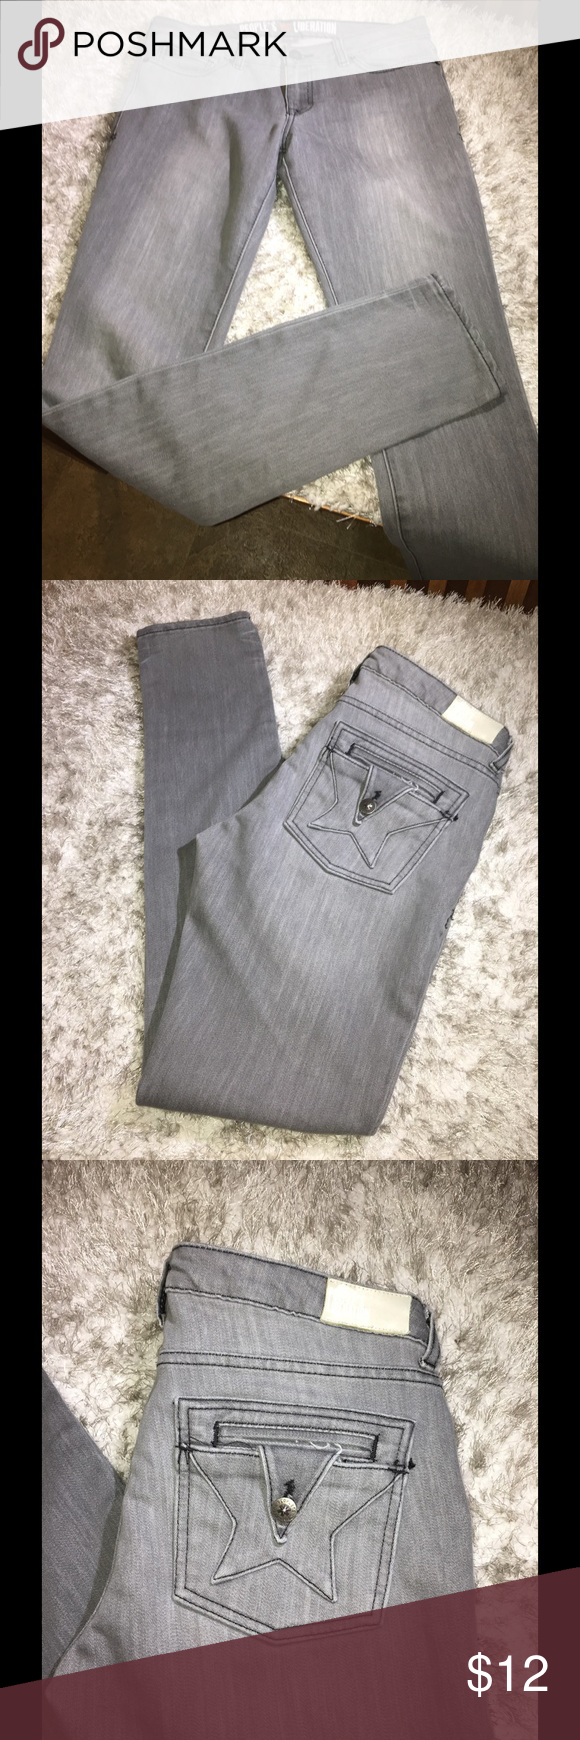 People's Liberation Grey Skinny Jeans Size 29 People's Liberation skinny jeans.  Washed out grey color, this is the way the come not just use fading.  Size 29. Inseam is 34 inches. Great condition. Important:   All items are freshly laundered as applicable prior to shipping (new items and shoes excluded).  Not all my items are from pet/smoke free homes.  Price is reduced to reflect this!   Thank you for looking! Peoples Liberation Jeans Skinny